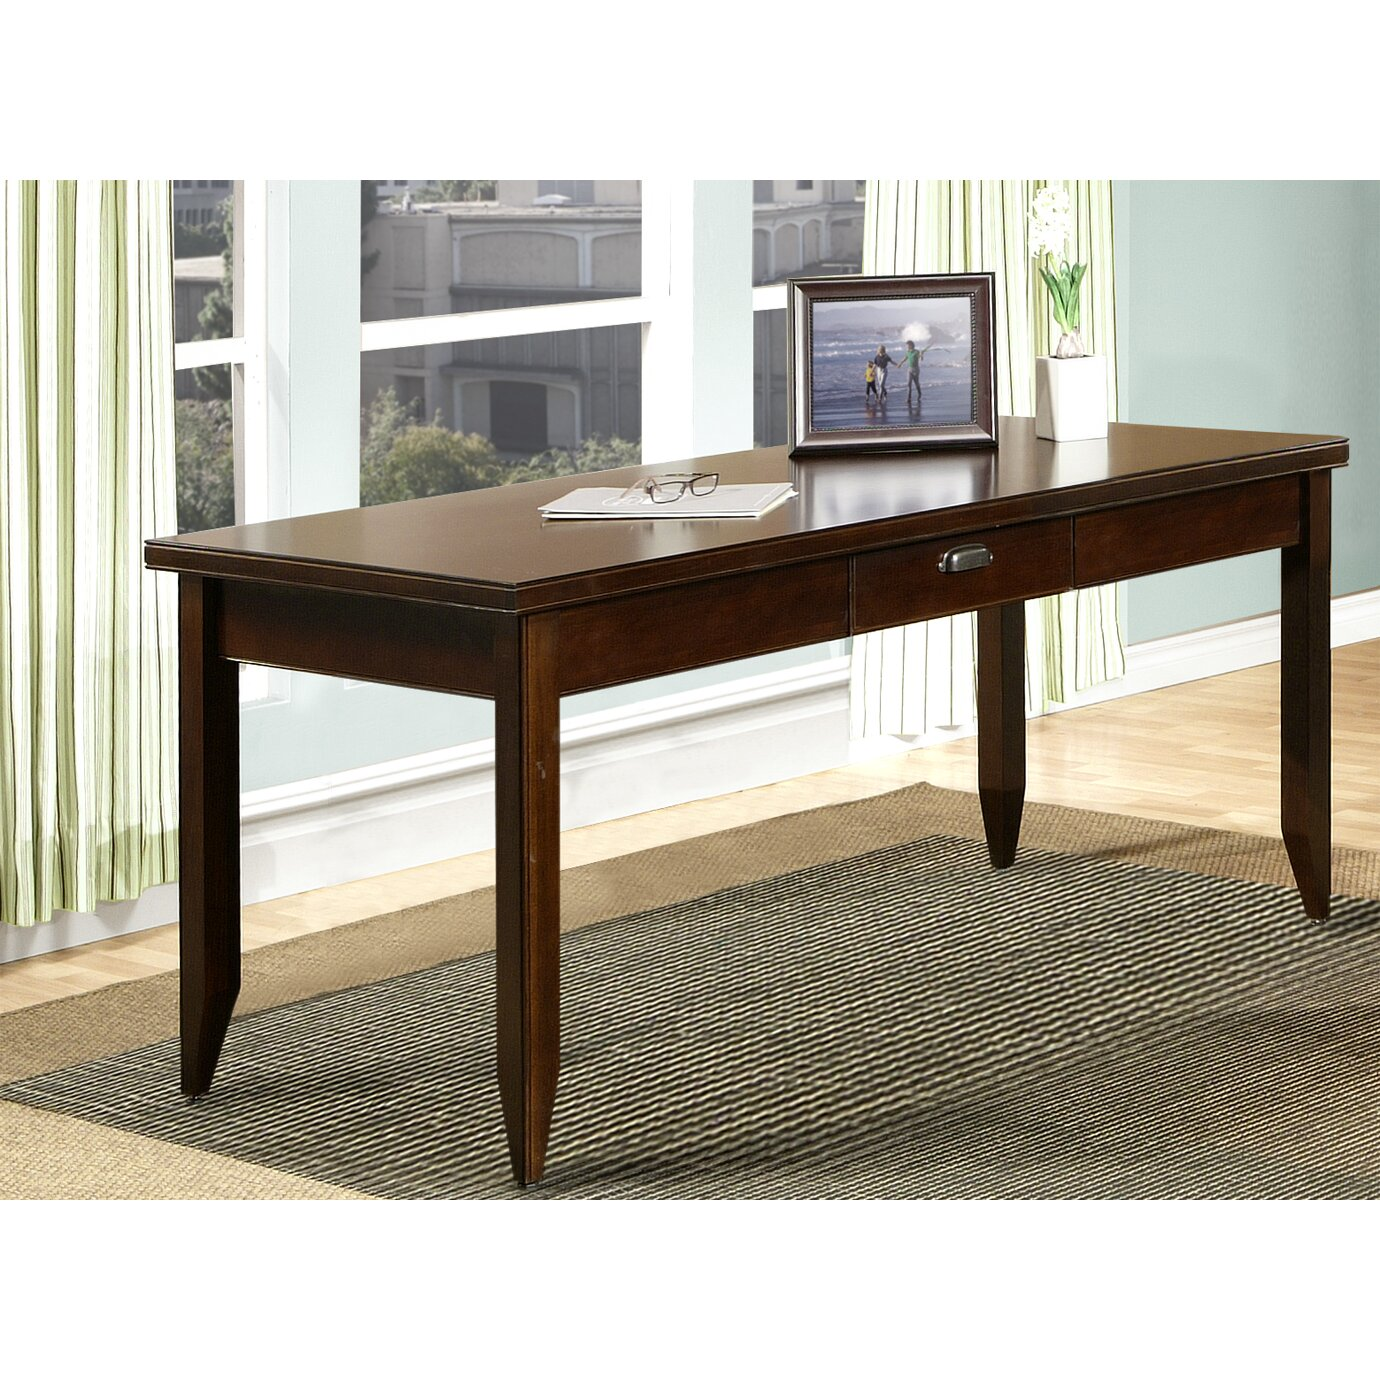 kathy ireland writing desk Double pedestal computer desk single pedestal computer desk writing desk  with 3 drawers and shelf see all desks by kathy ireland home by martin.